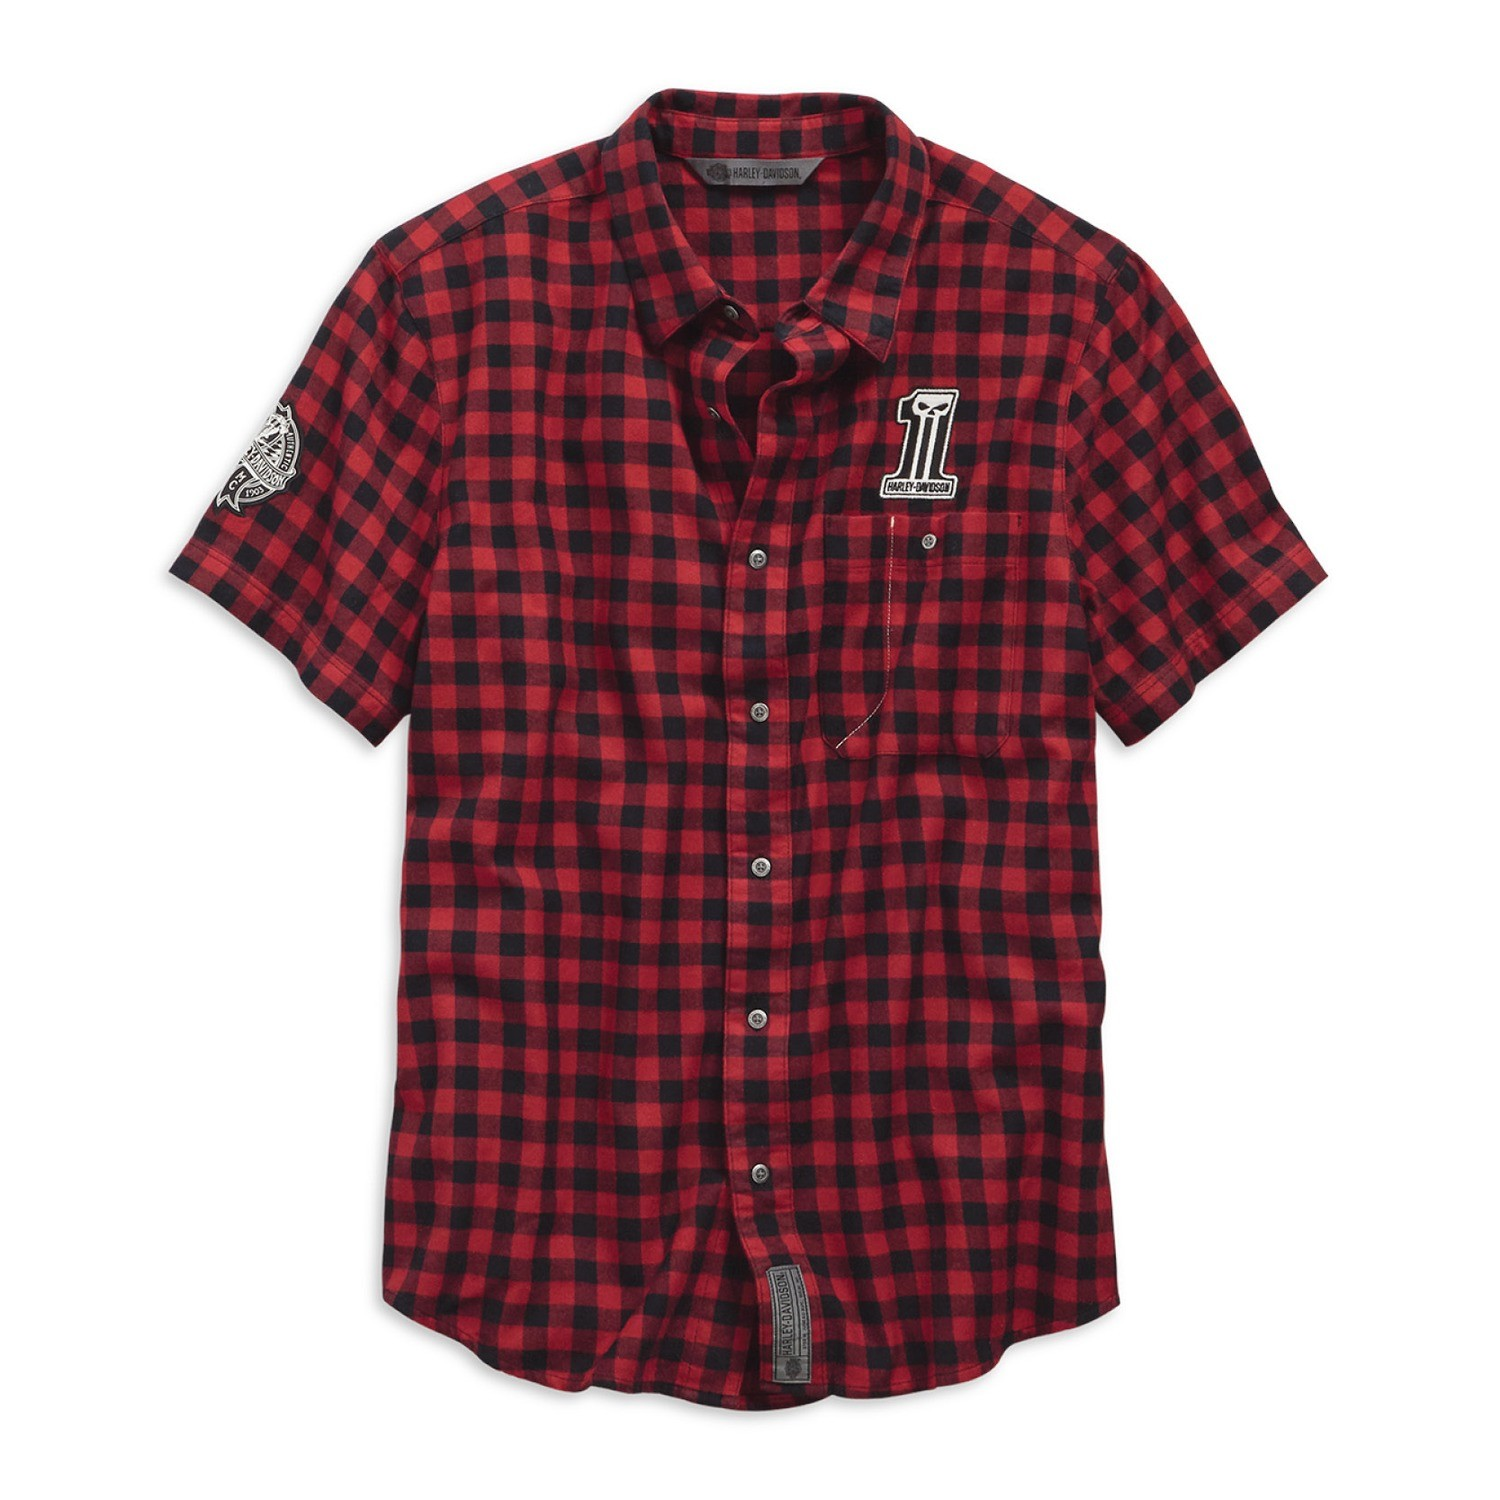 Shirt Men Short Sleeve Garage Checked Plaid Slim Fit